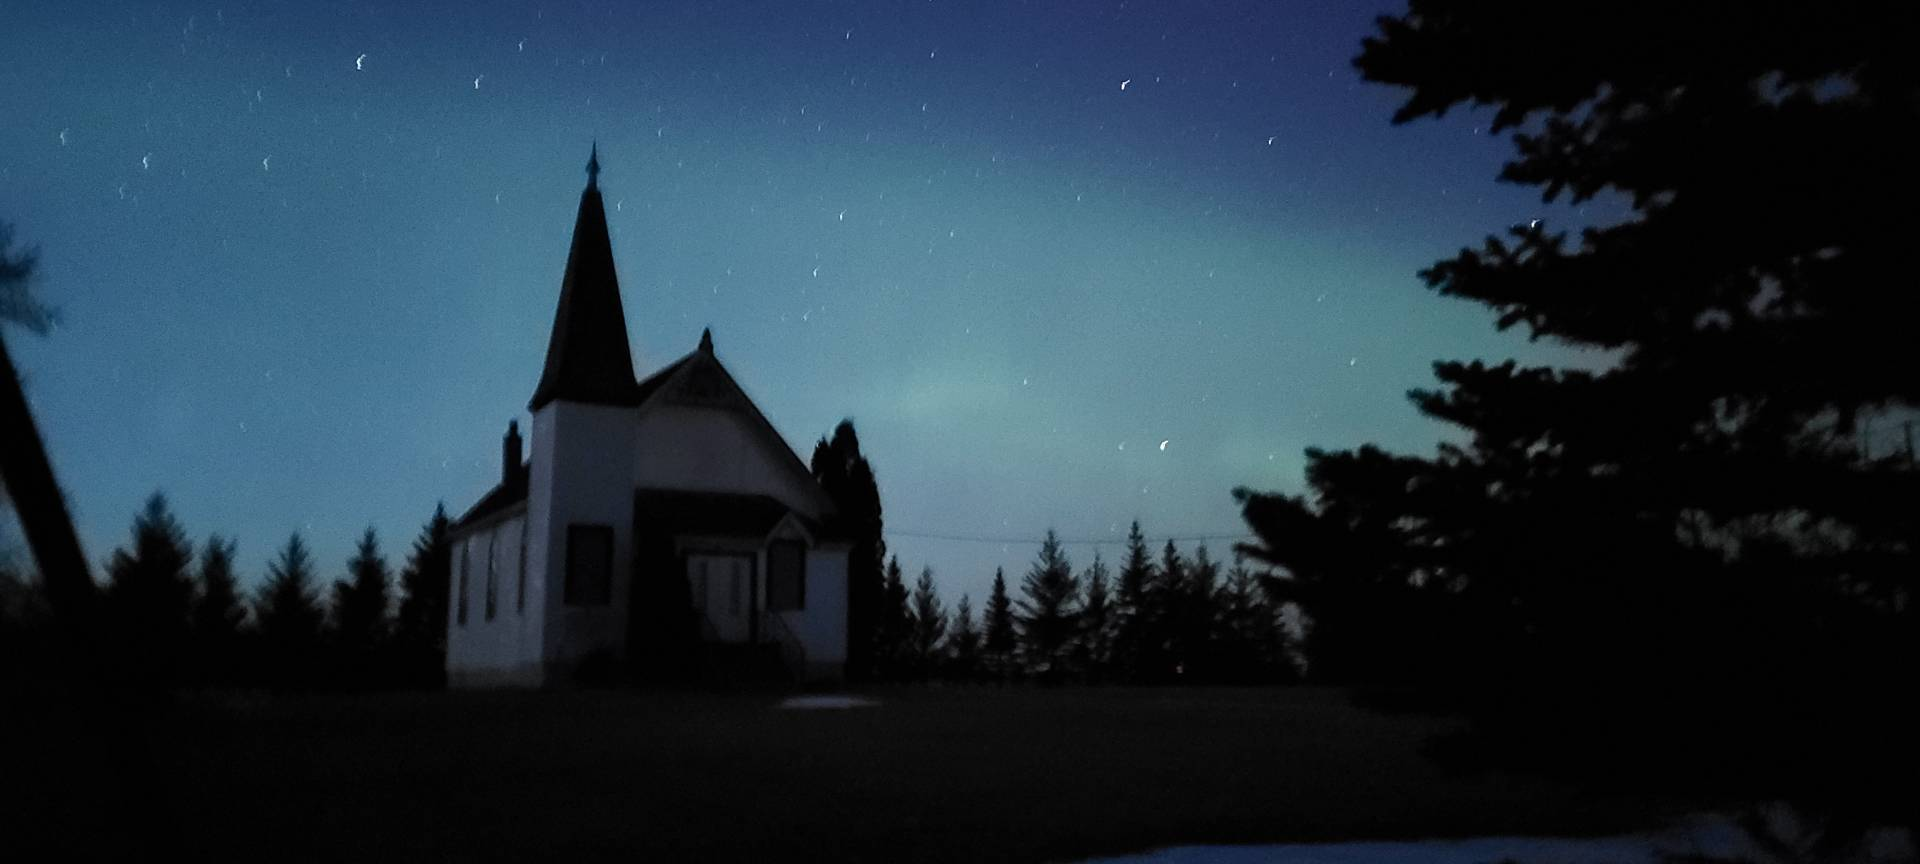 Just arrived on location, already seeing some Aurora!